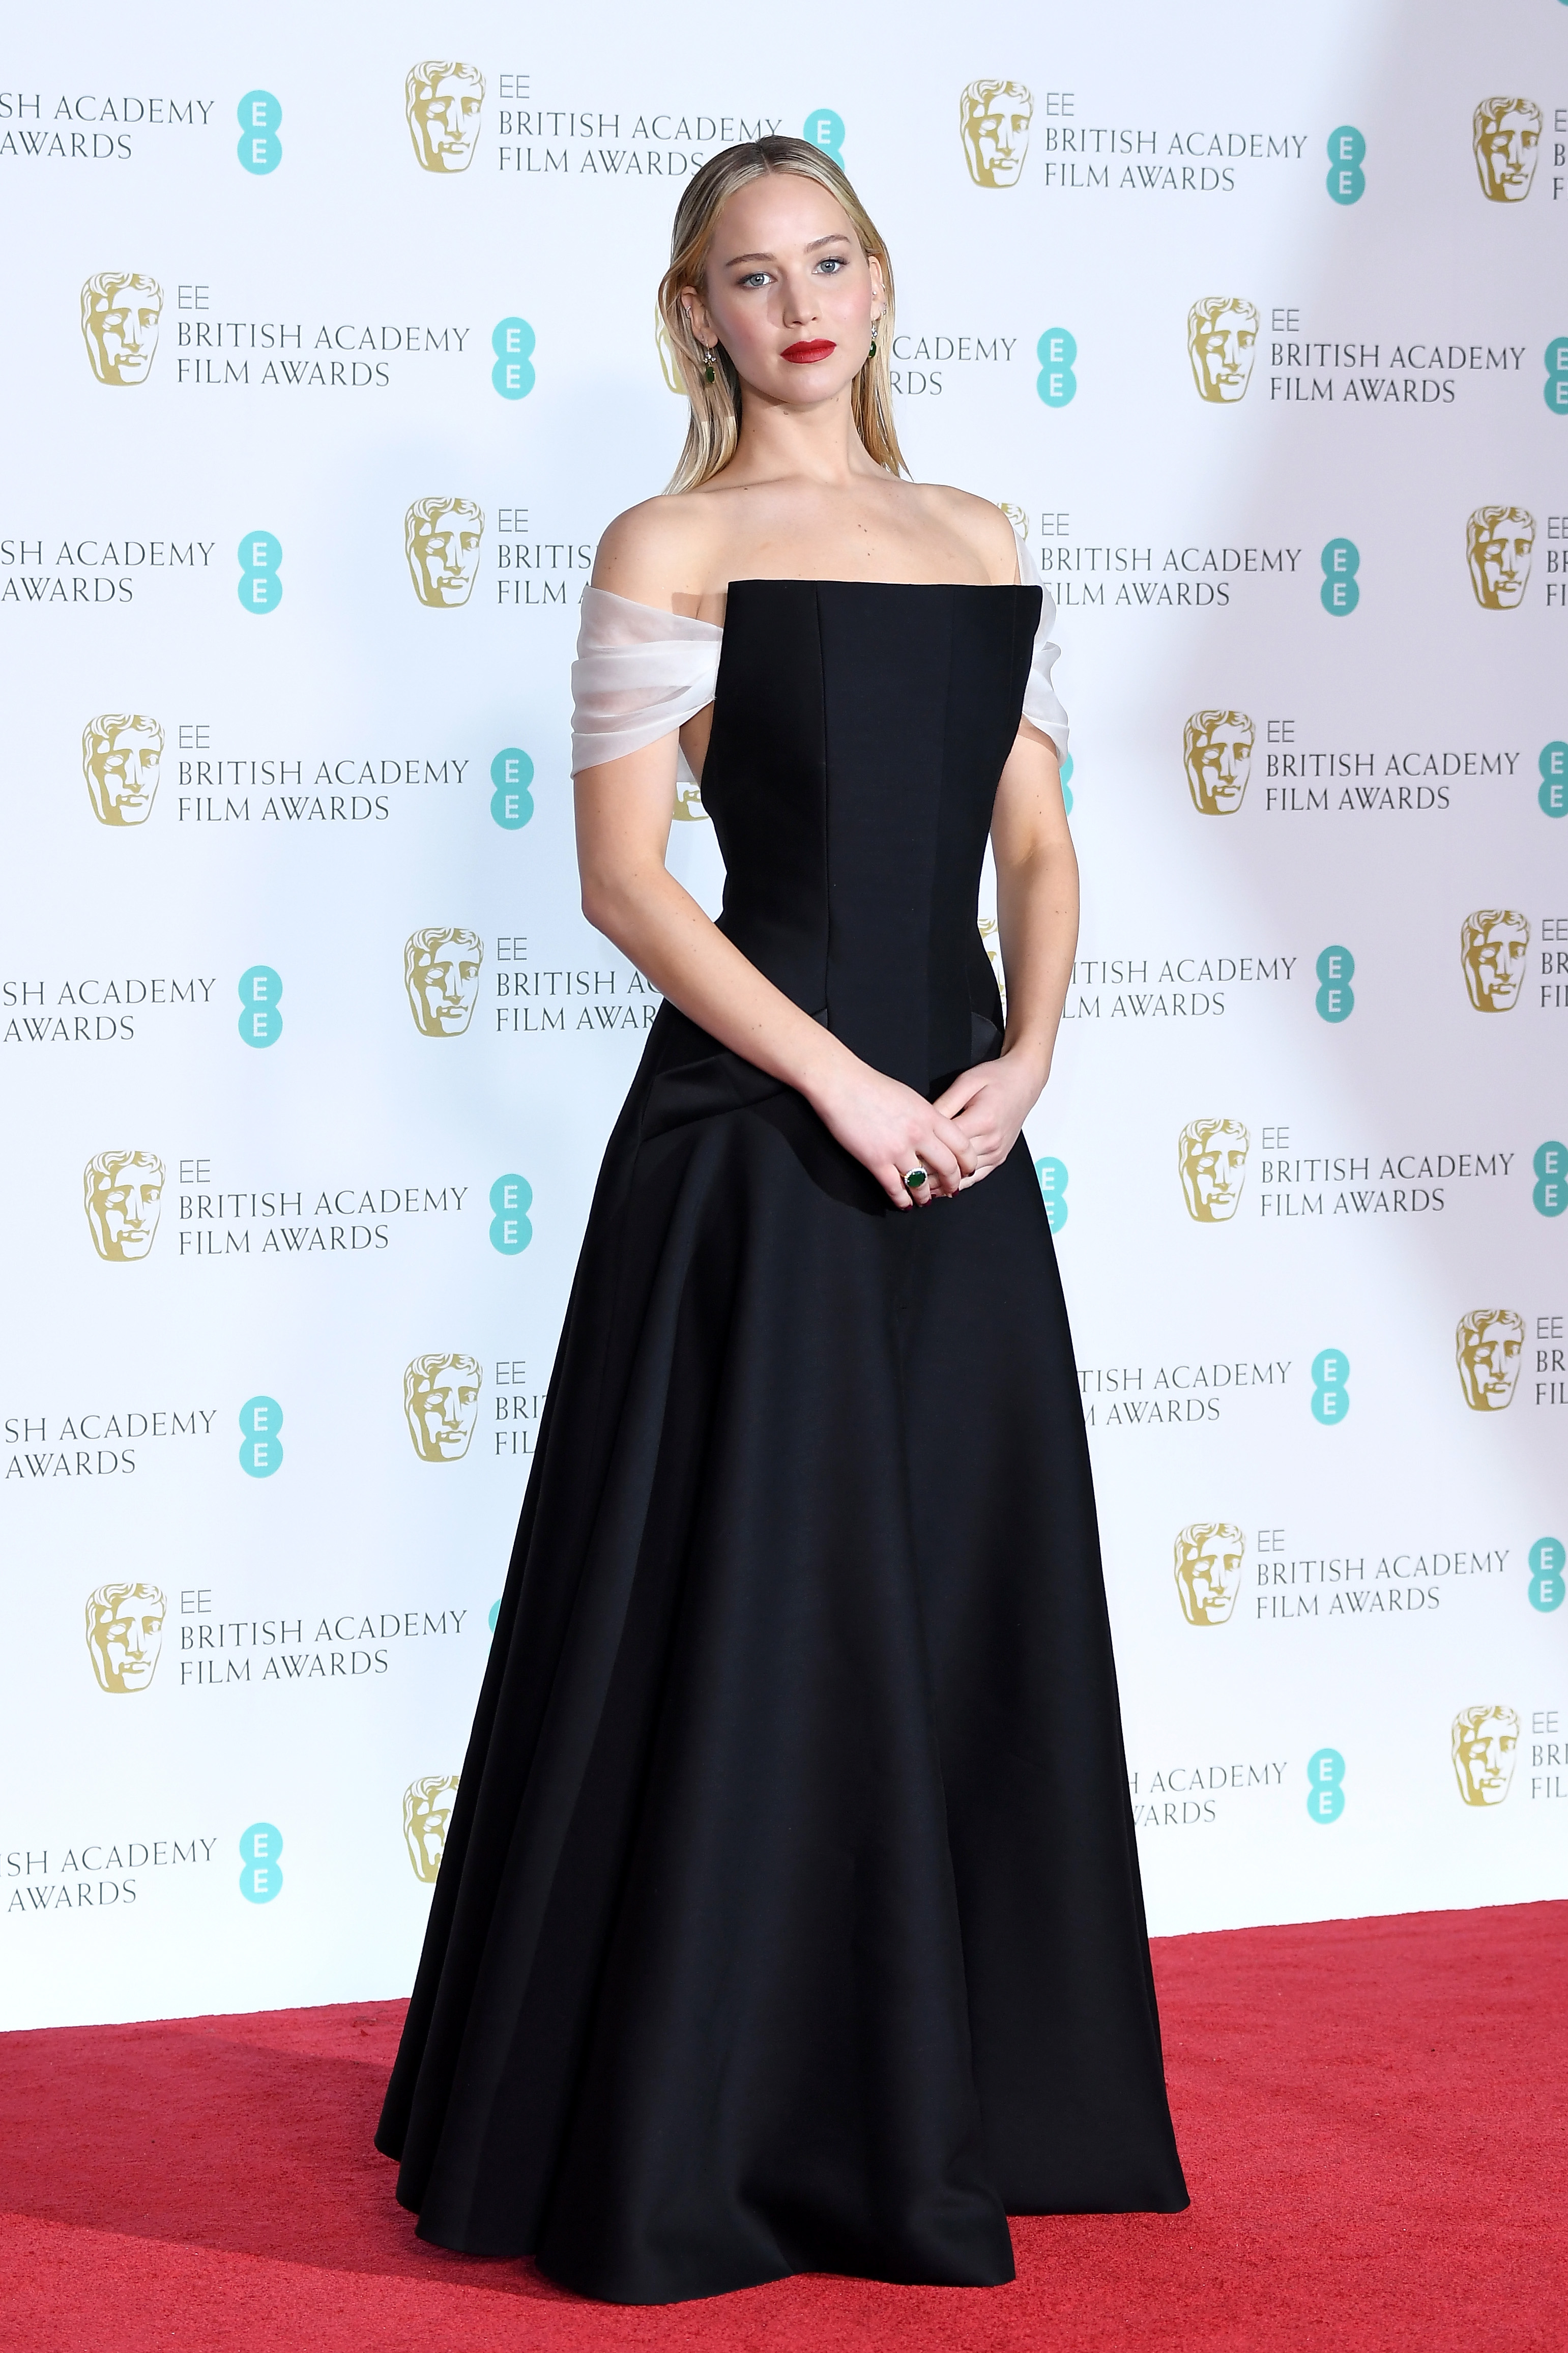 Jennifer Lawrence poses in the press room during the EE British Academy Film Awards (BAFTA) held at Royal Albert Hall on February 18, 2018 in London